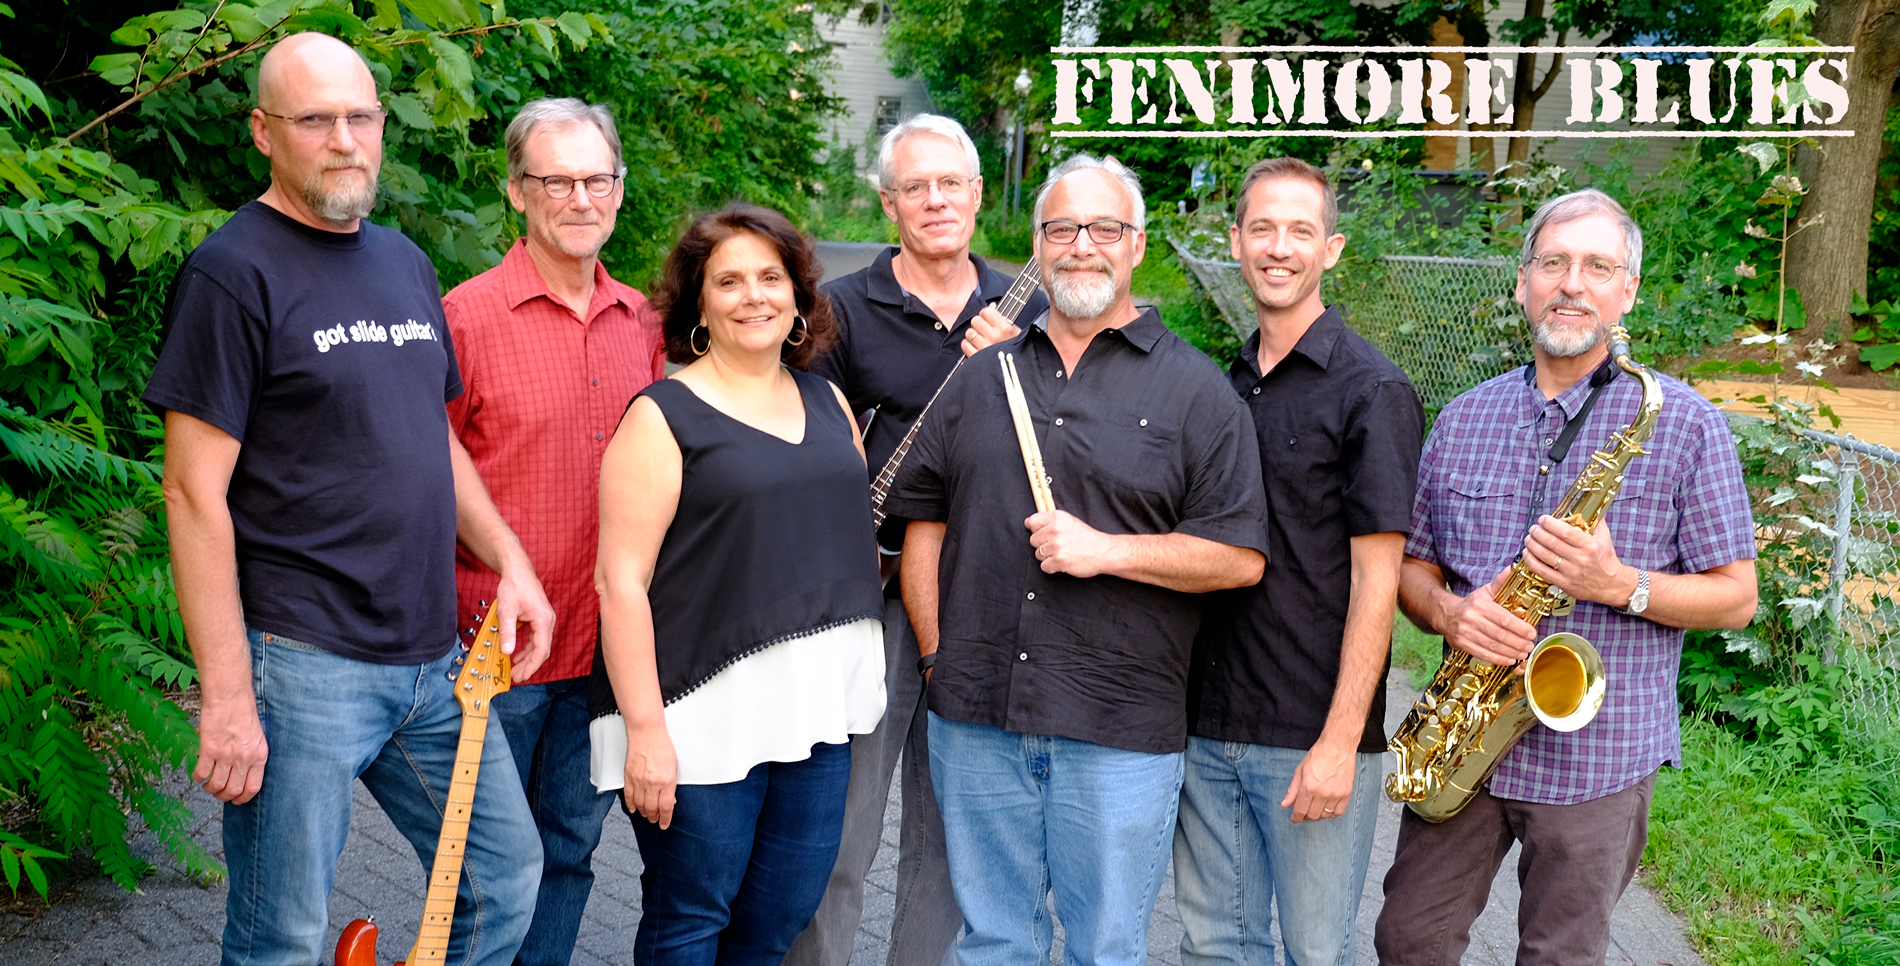 Fenimore Blues perform a live music concert on the Long Lake Town Beach